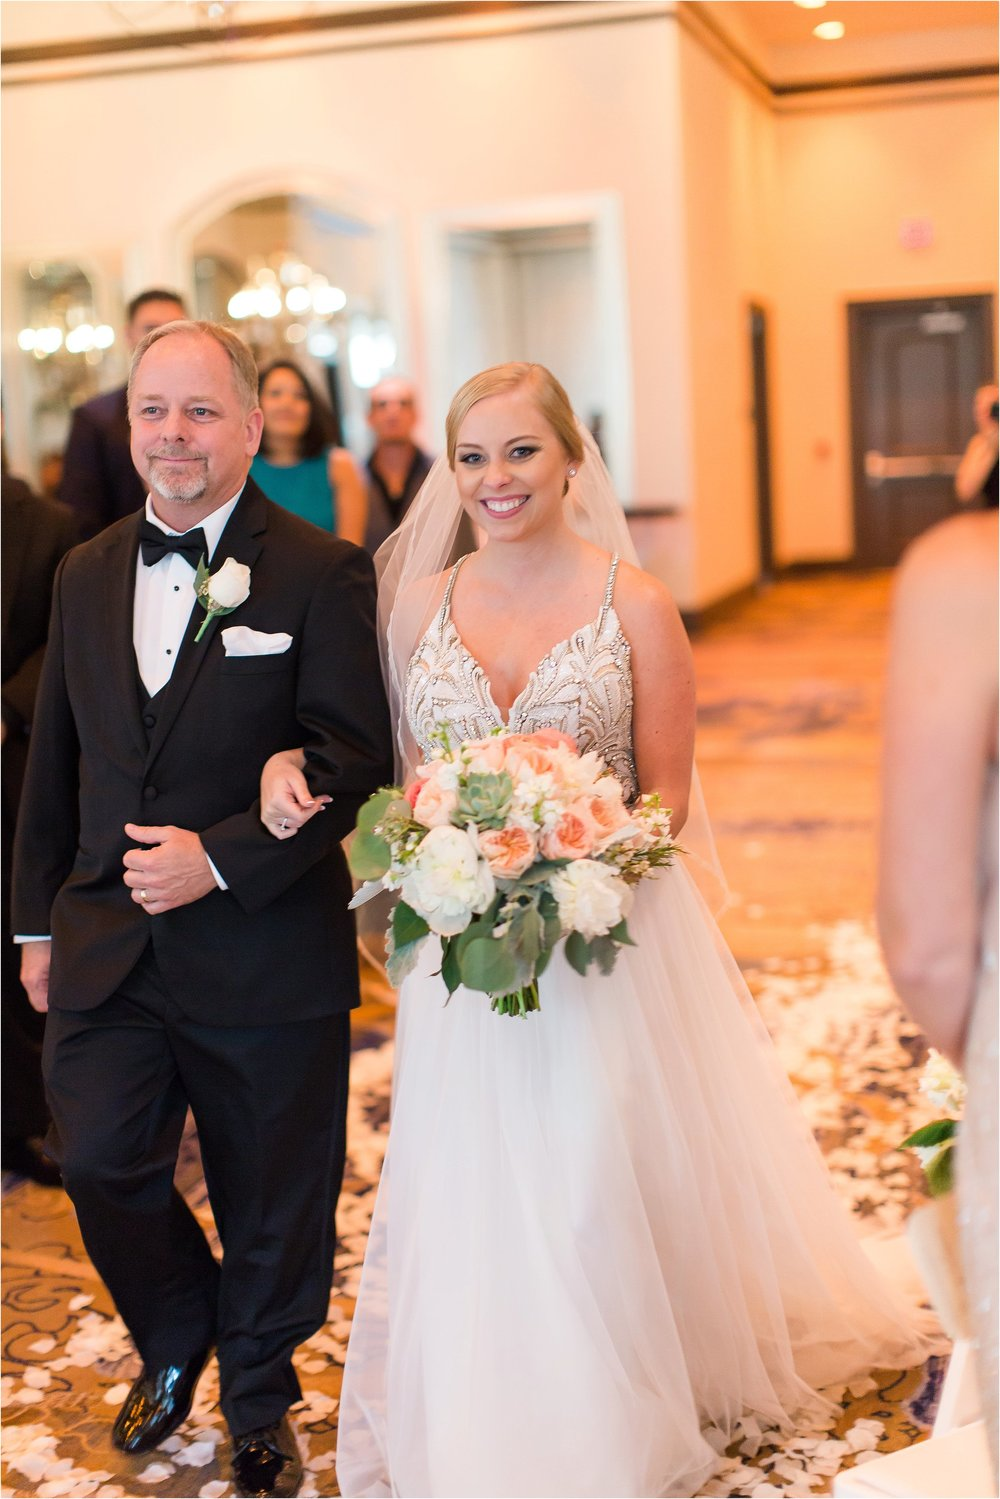 Bride walking down the aisle at Wyndham Grand Resort at Bonnet Creek Wedding by PSJ Photography